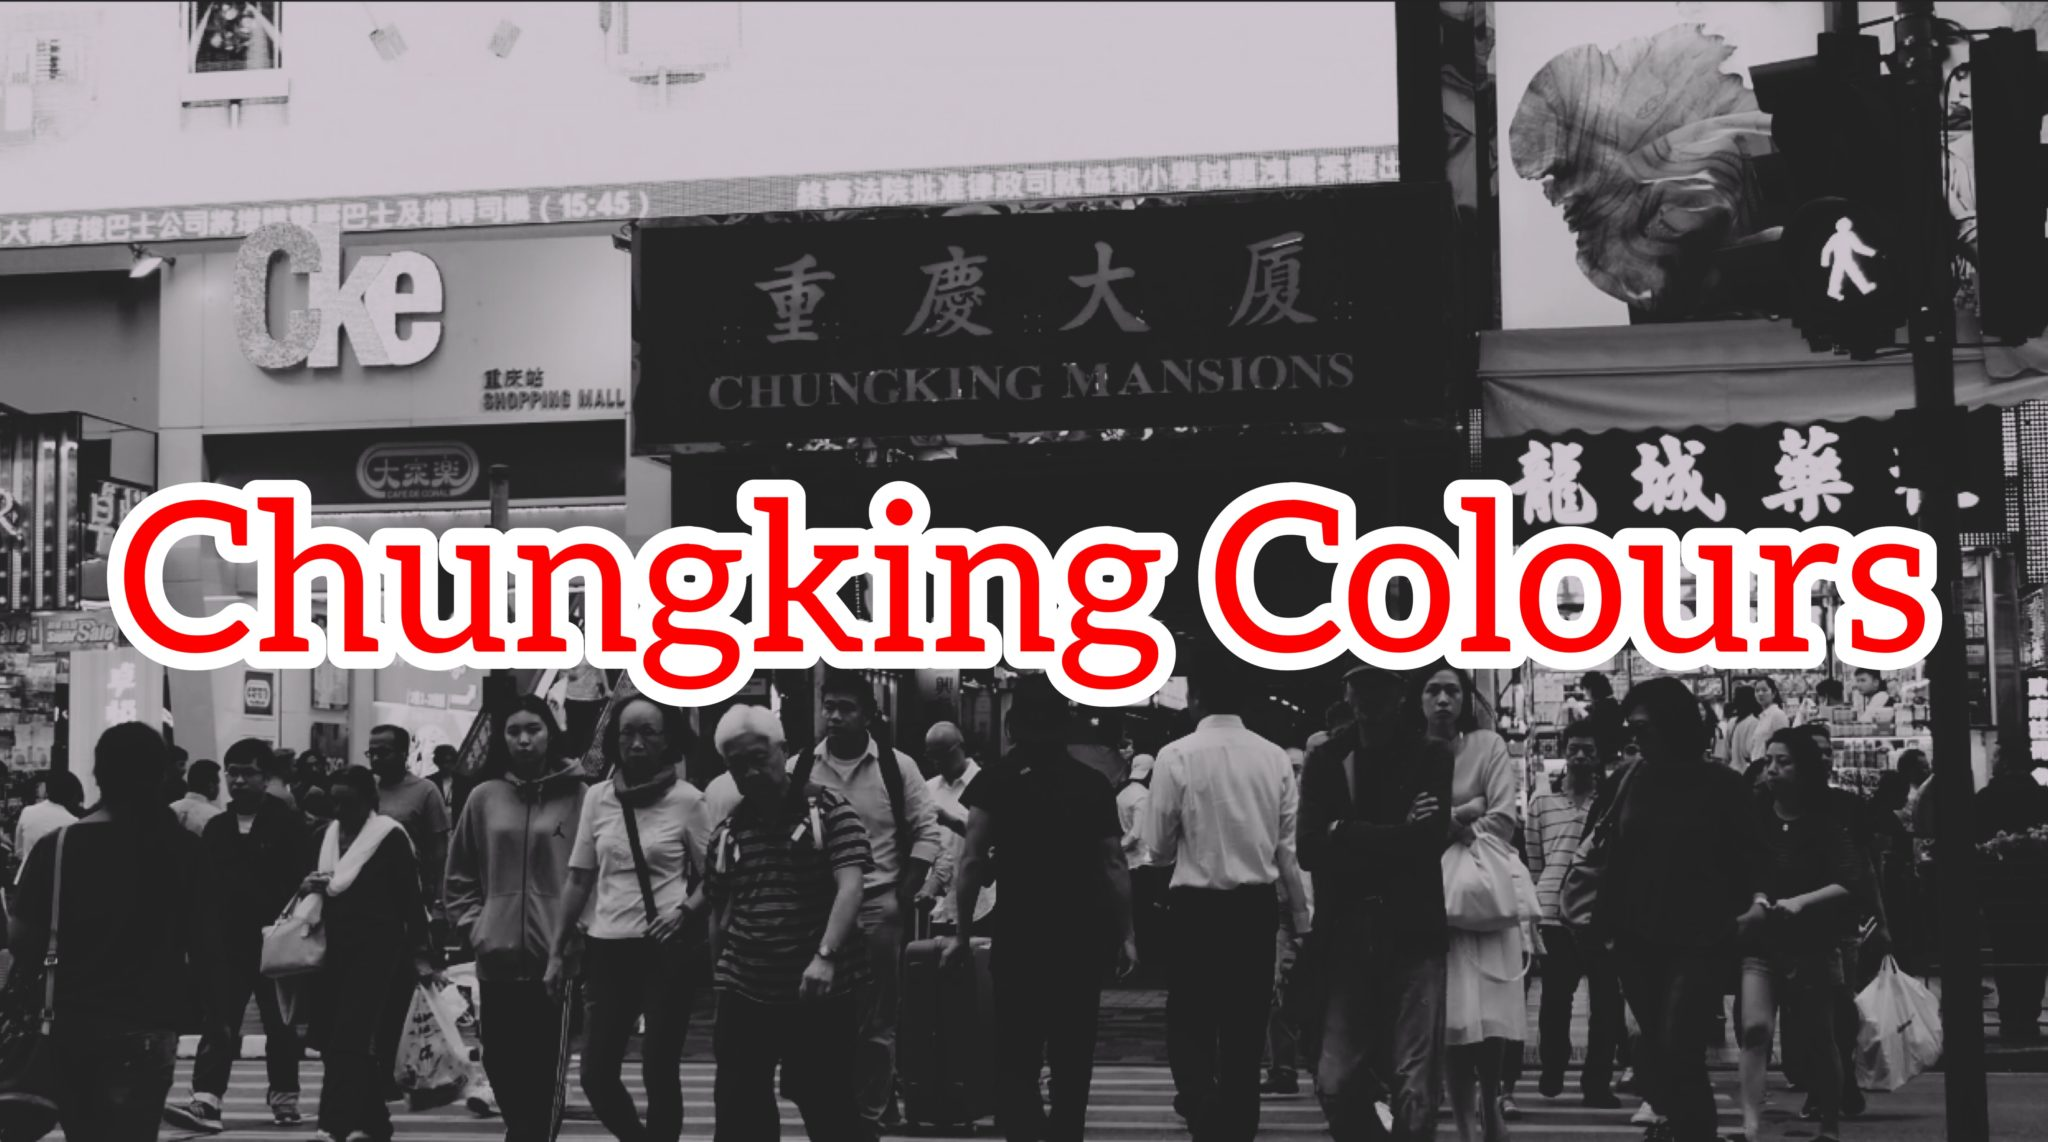 Chungking Colours